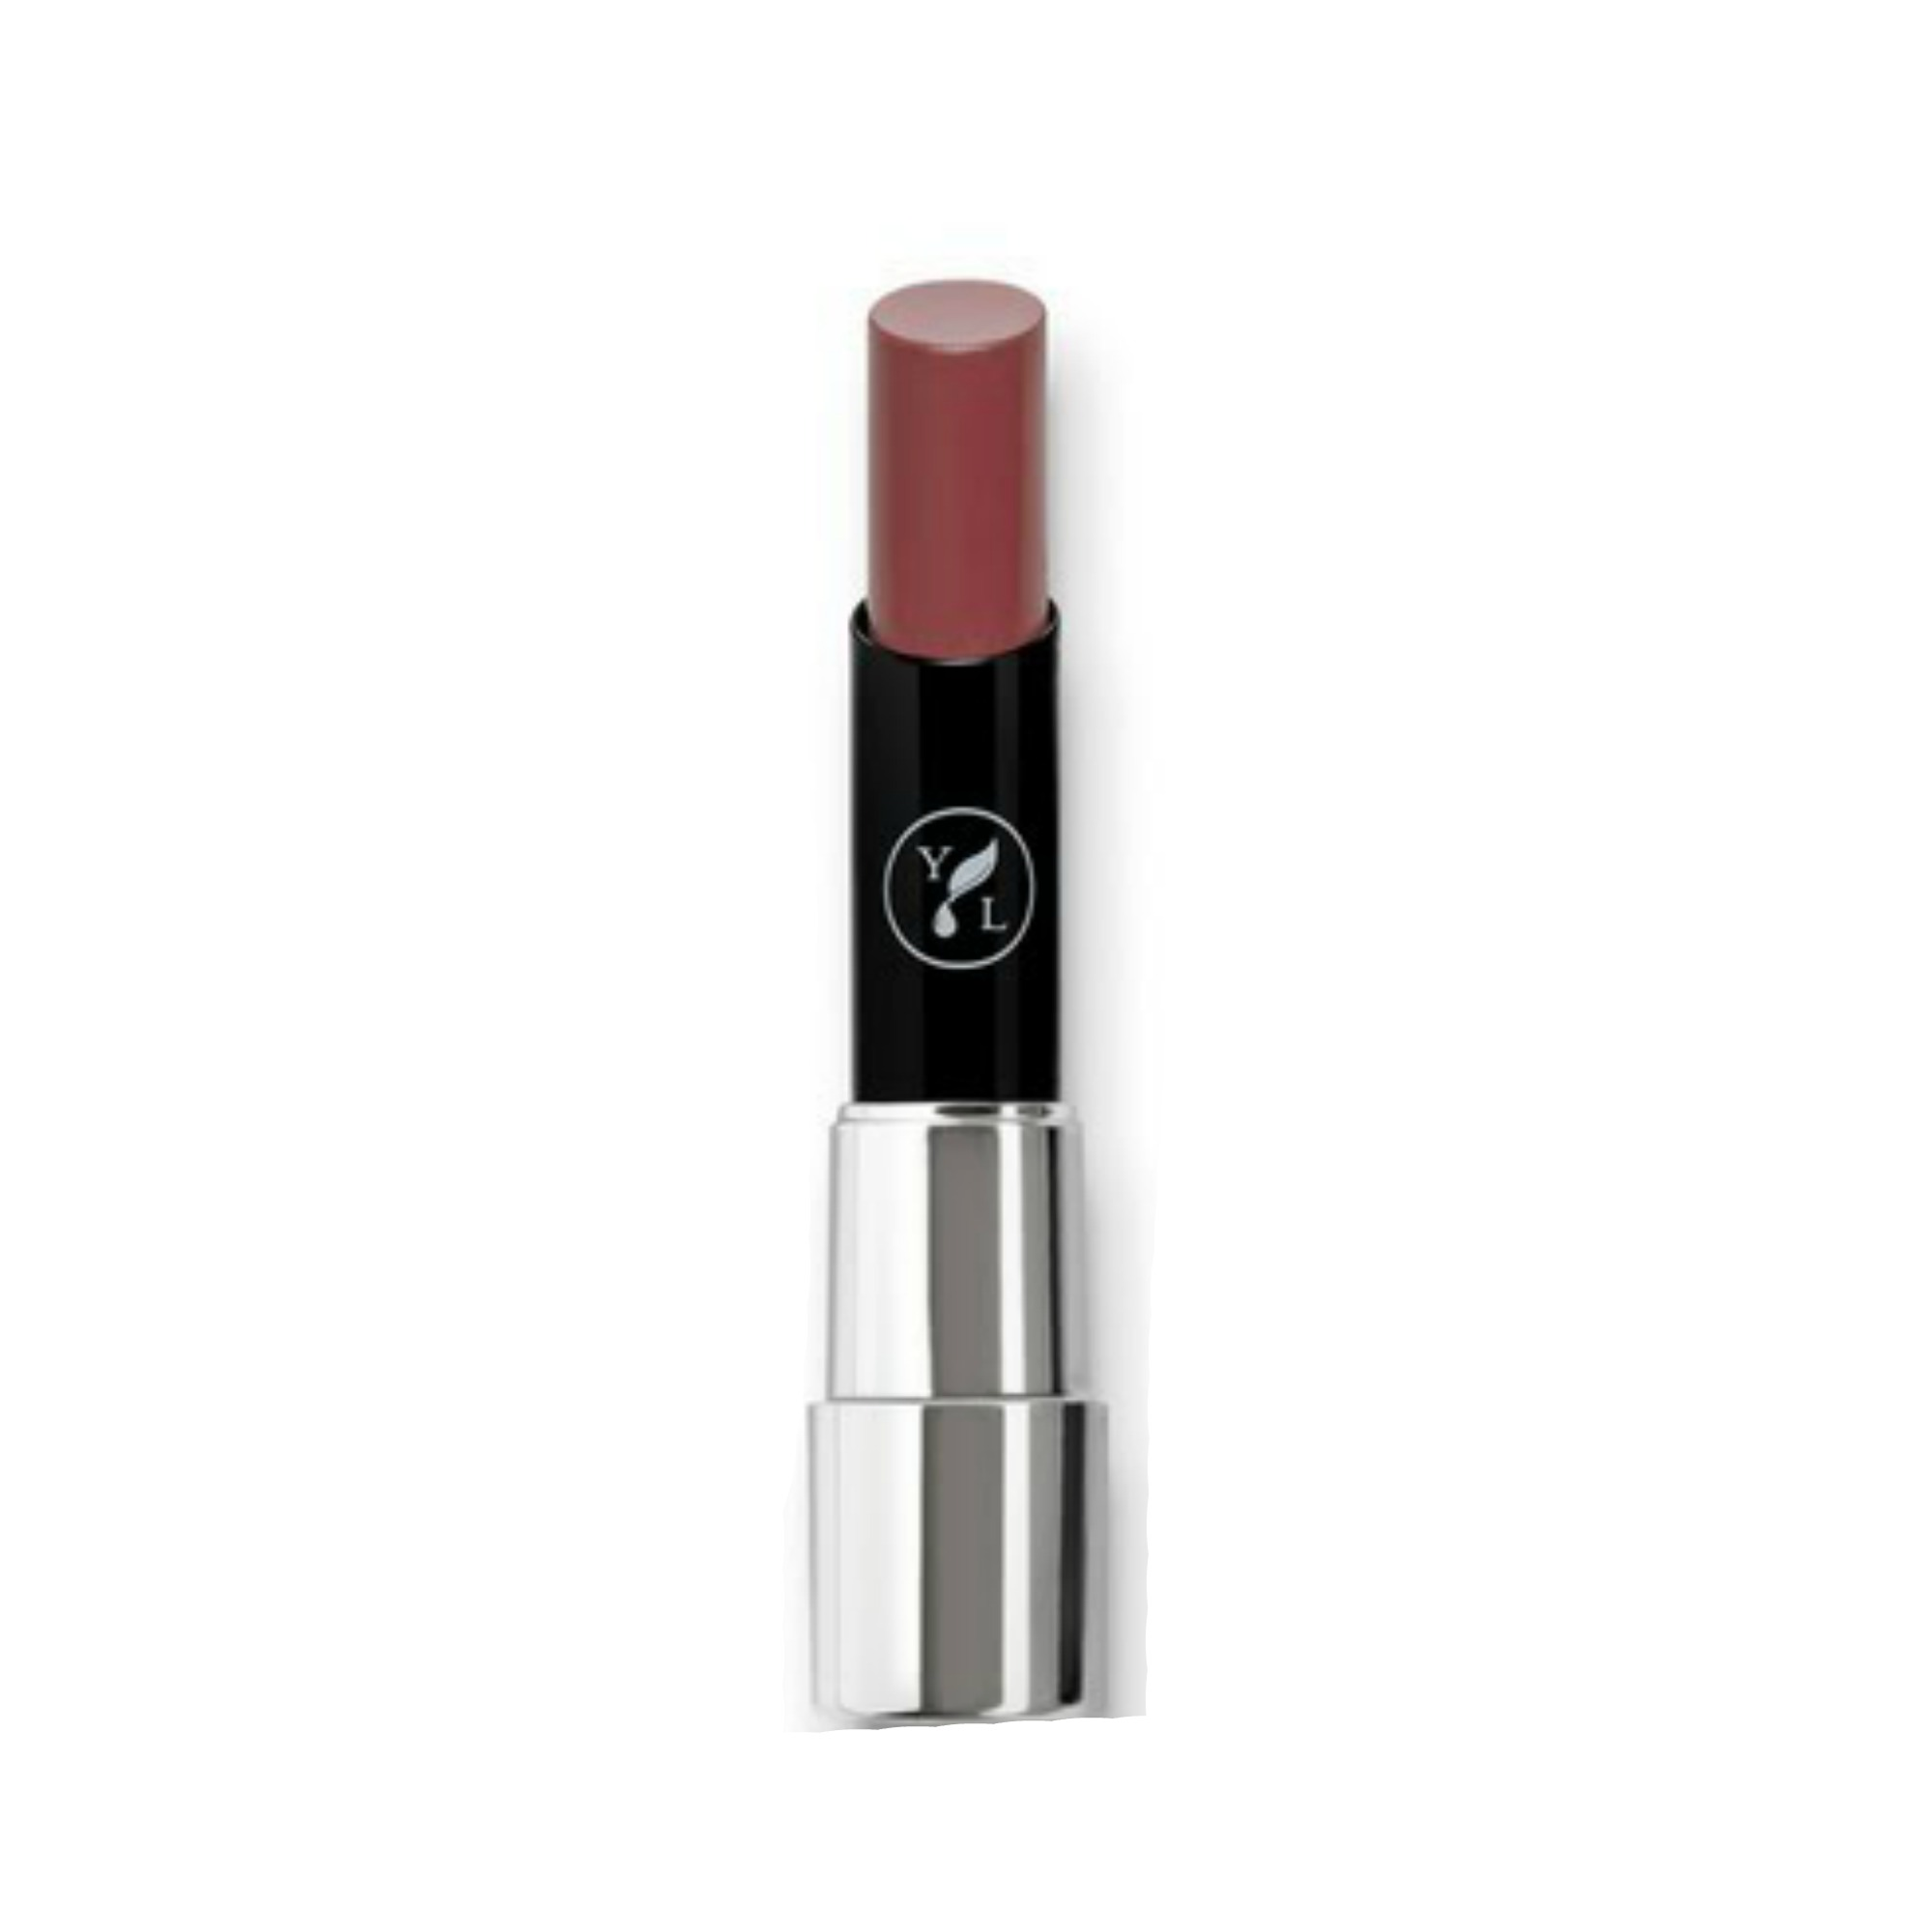 UNTAMED    Untamed is a neutral raspberry color. This Savvy Minerals cinnamint-infused lipstick is made to glide on like butter and add a luxurious shine, full of nourishing ingredients that emphasize your natural beauty and make your beautiful pout look fuller.   Click here   to learn more about this product.